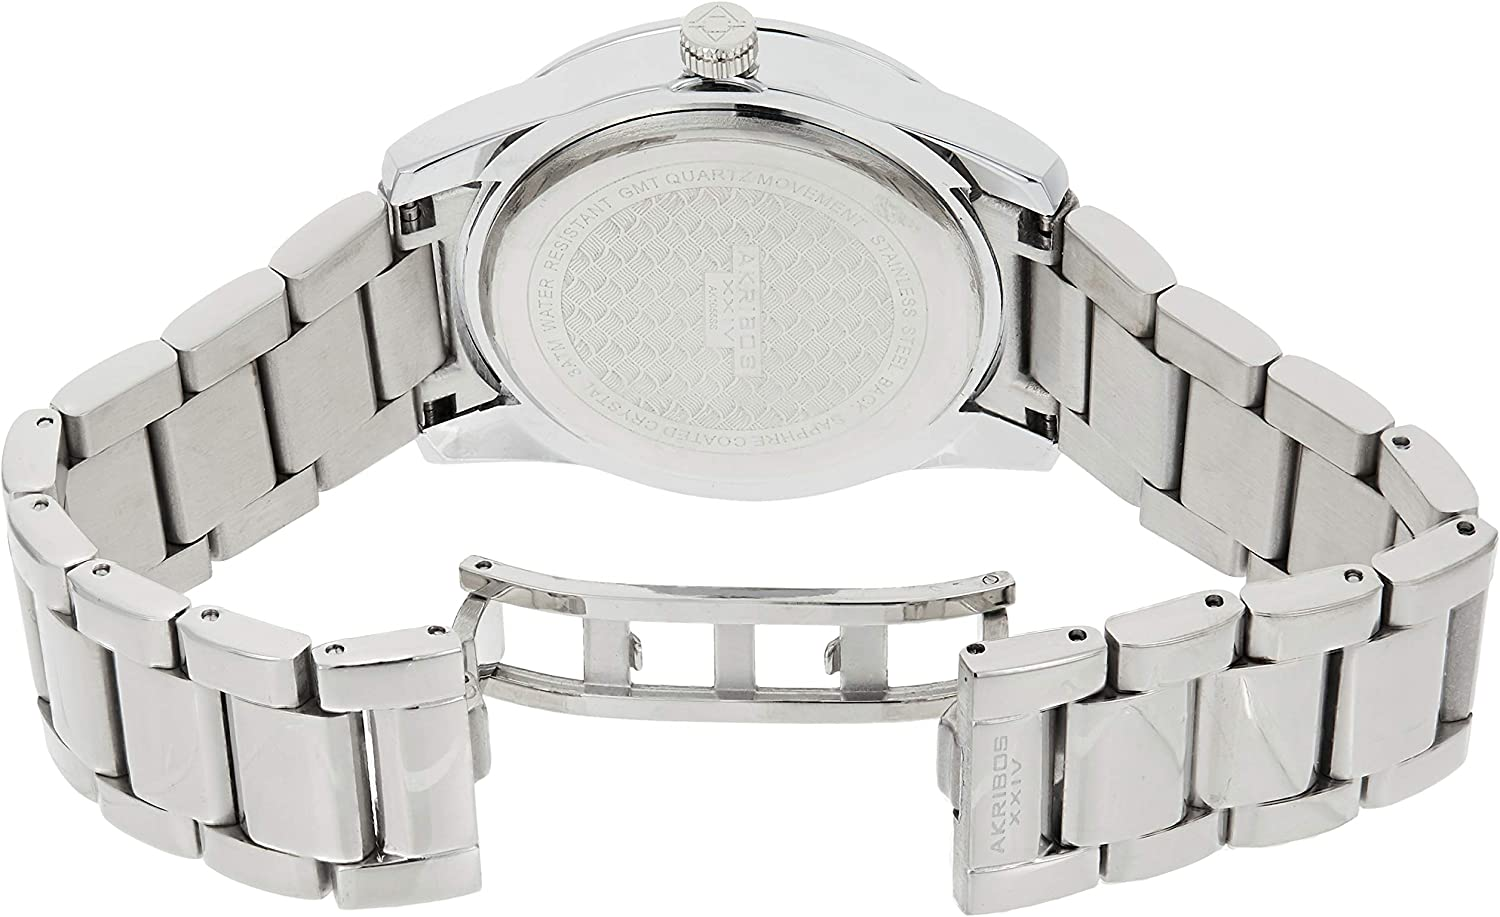 Akribos XXIV Women's Diamond Watch - Crystal Pave Dial and Bezel with Date Window On Stainless Steel Bracelet - AK487 Stainless Steel